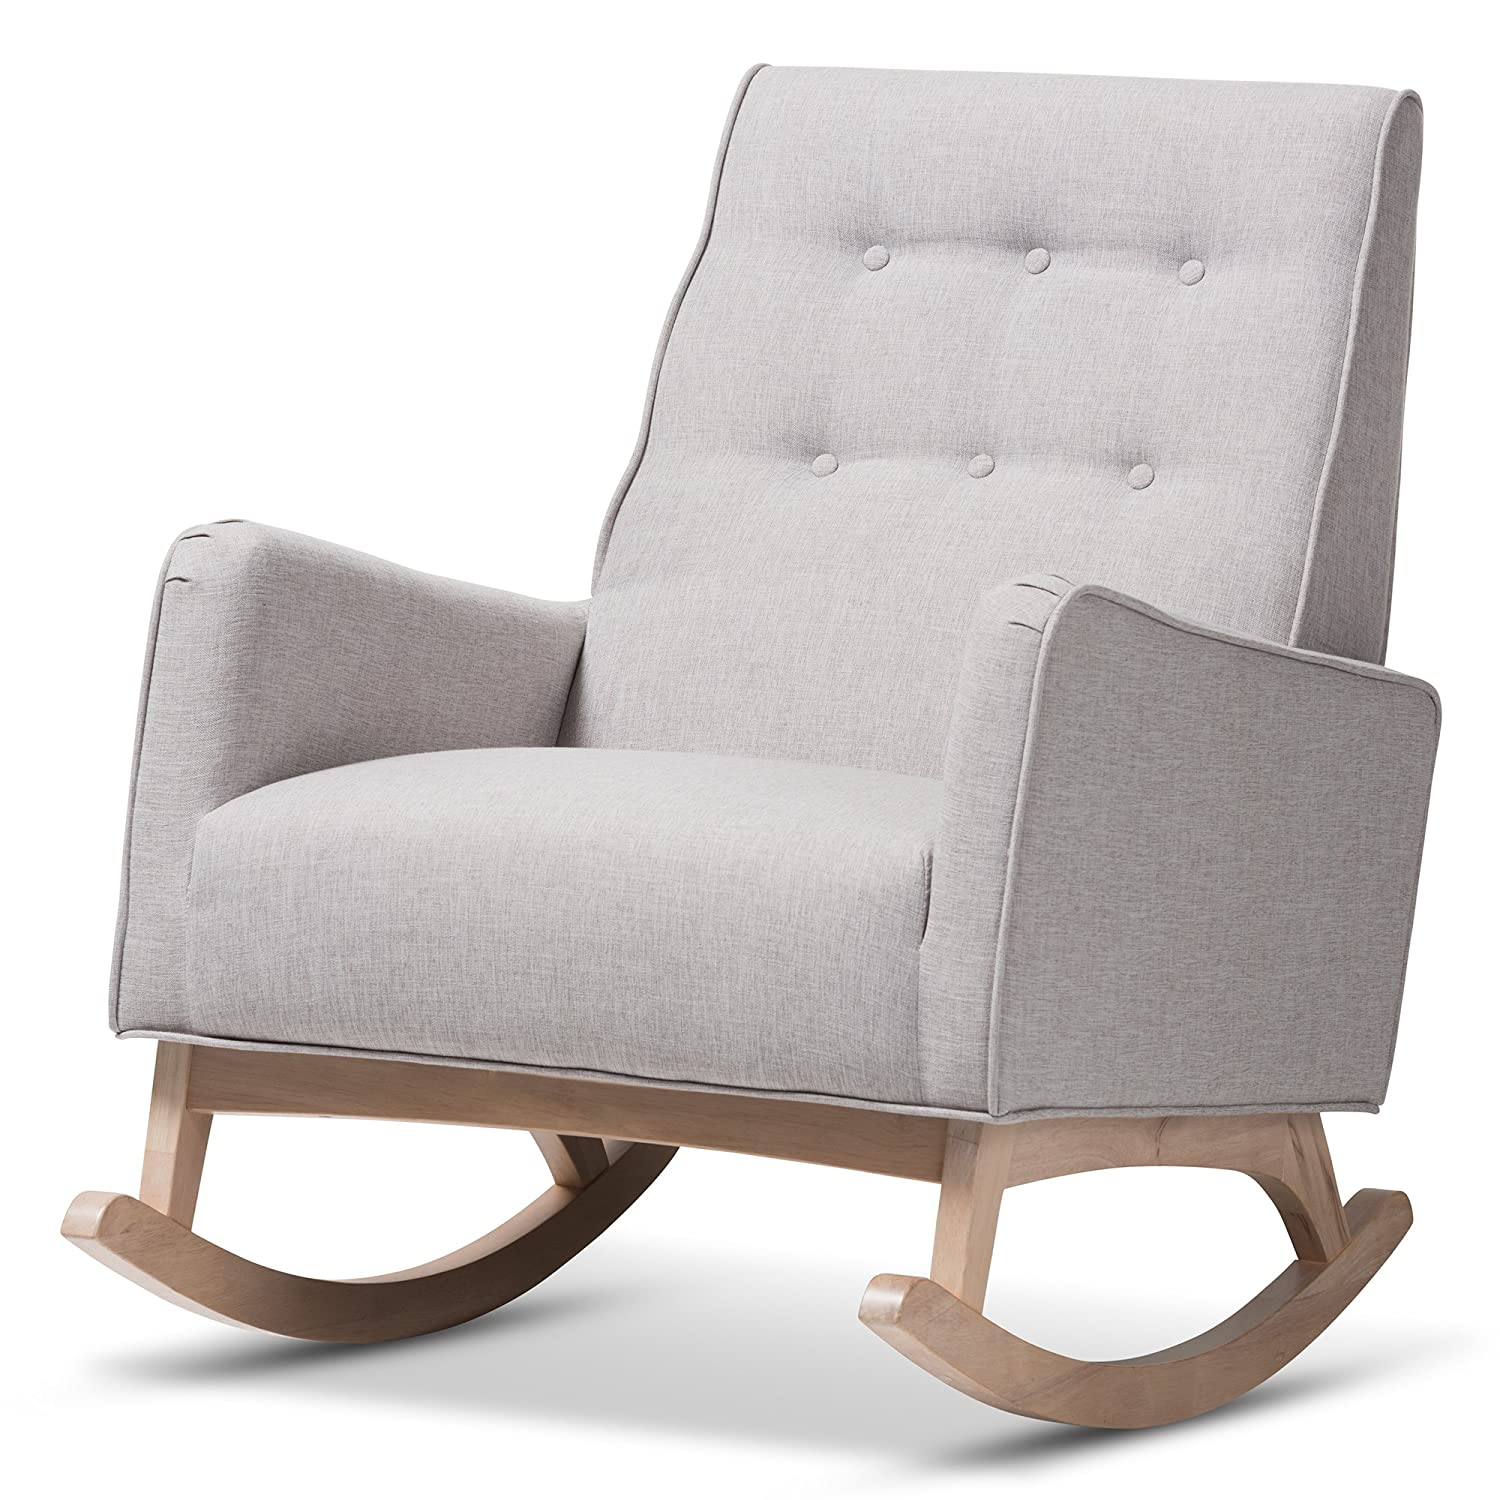 Fine Amazon Com Baxton Studio Mid Century Modern Rocking Chair Alphanode Cool Chair Designs And Ideas Alphanodeonline